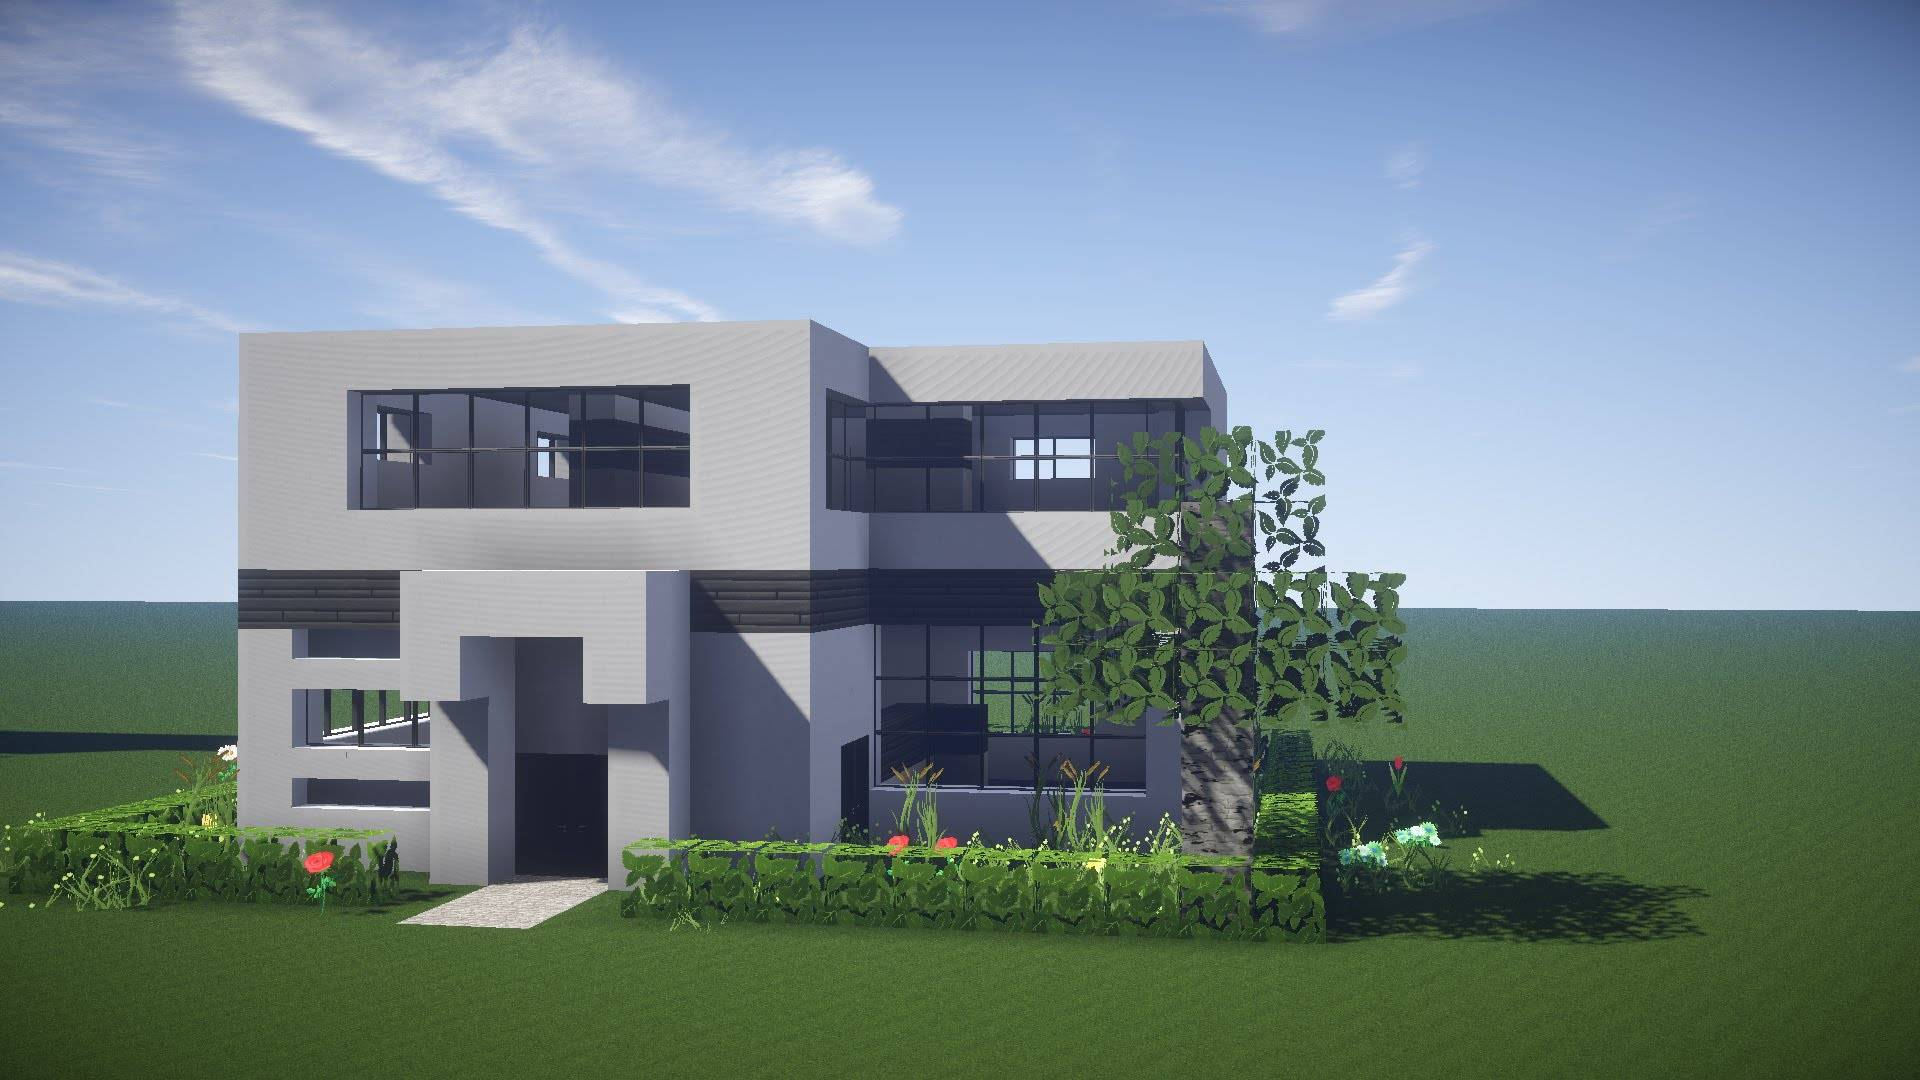 Minecraft House Tutorial Build Modern Home Plans Blueprints 167967